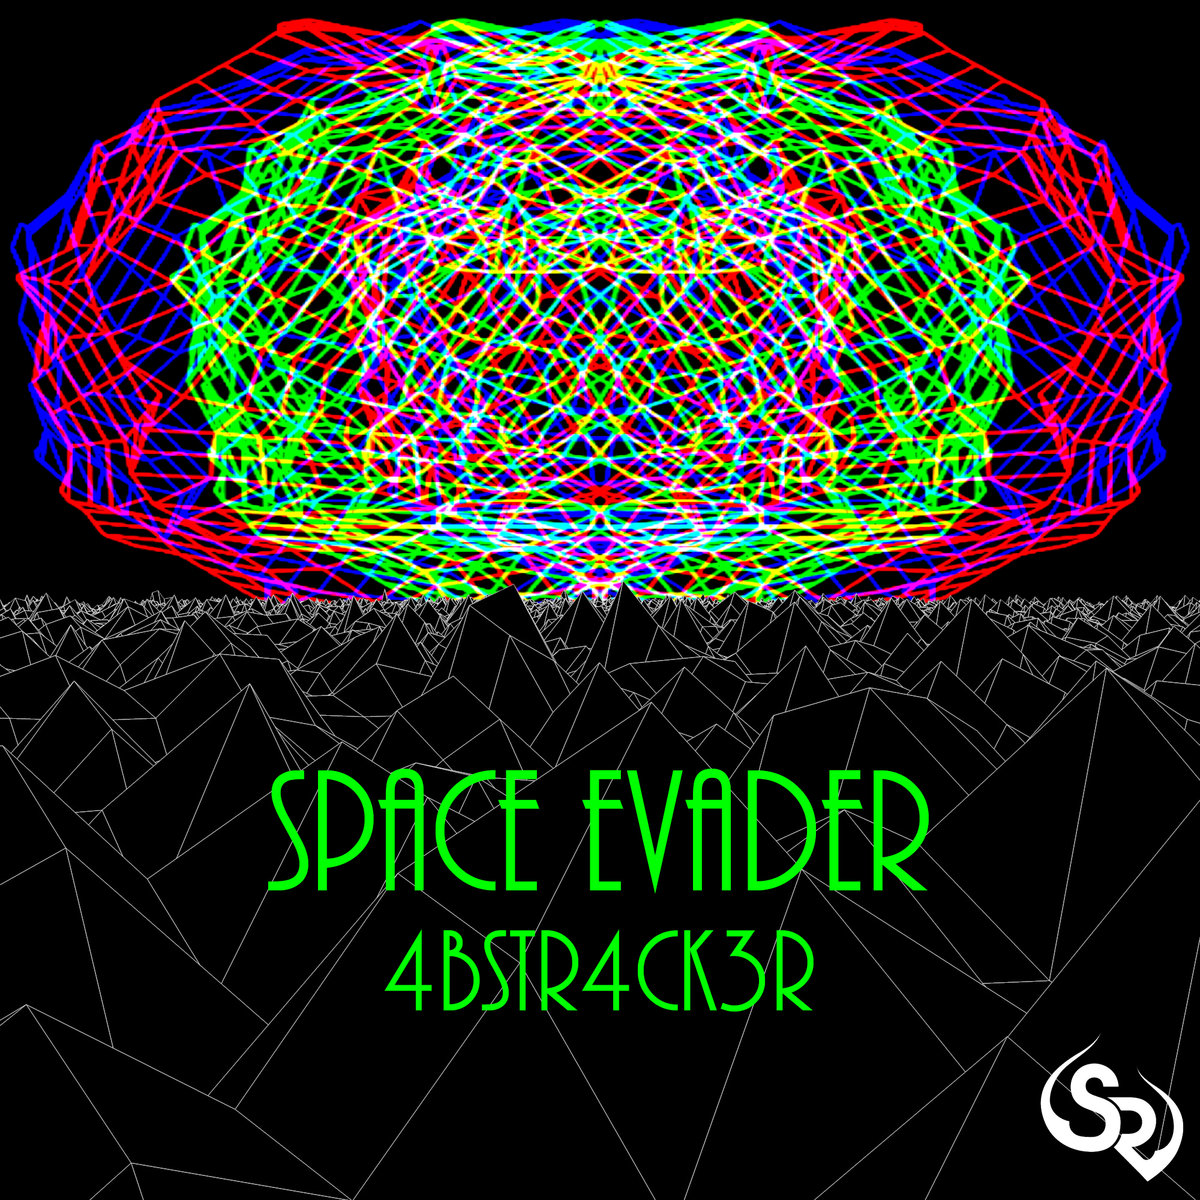 4bstr4ck3r - Don't Stop @ 'Space Evader' album (4bstr4ck3r, bass)